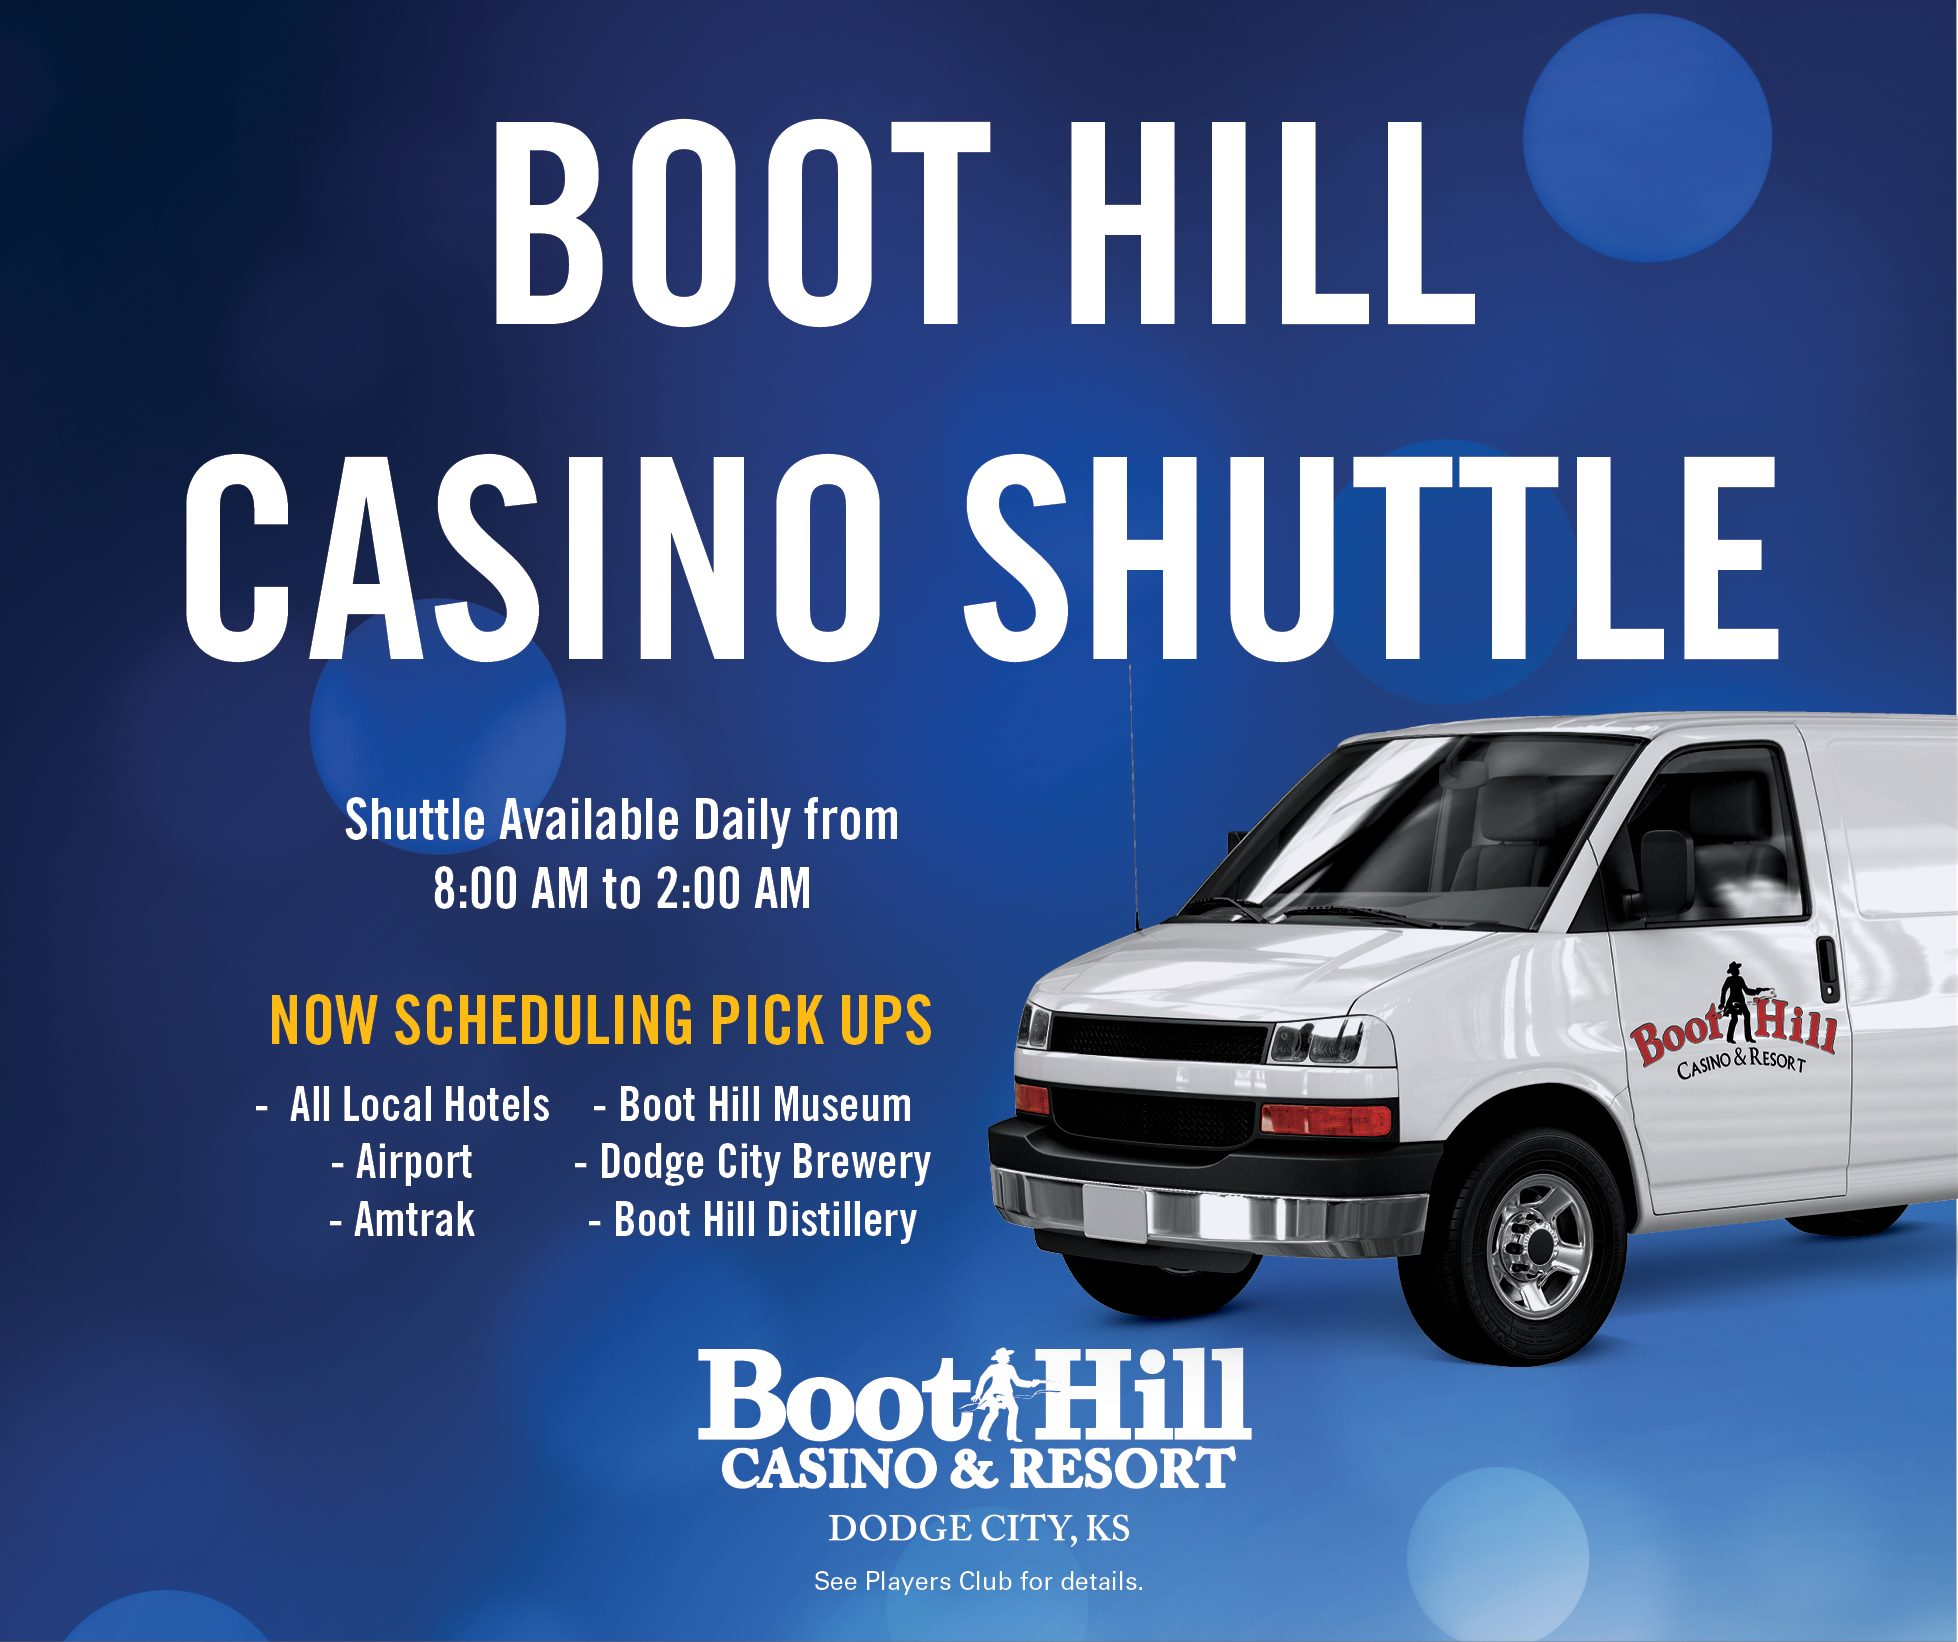 Boot Hill Casino & Resort Shuttle Service